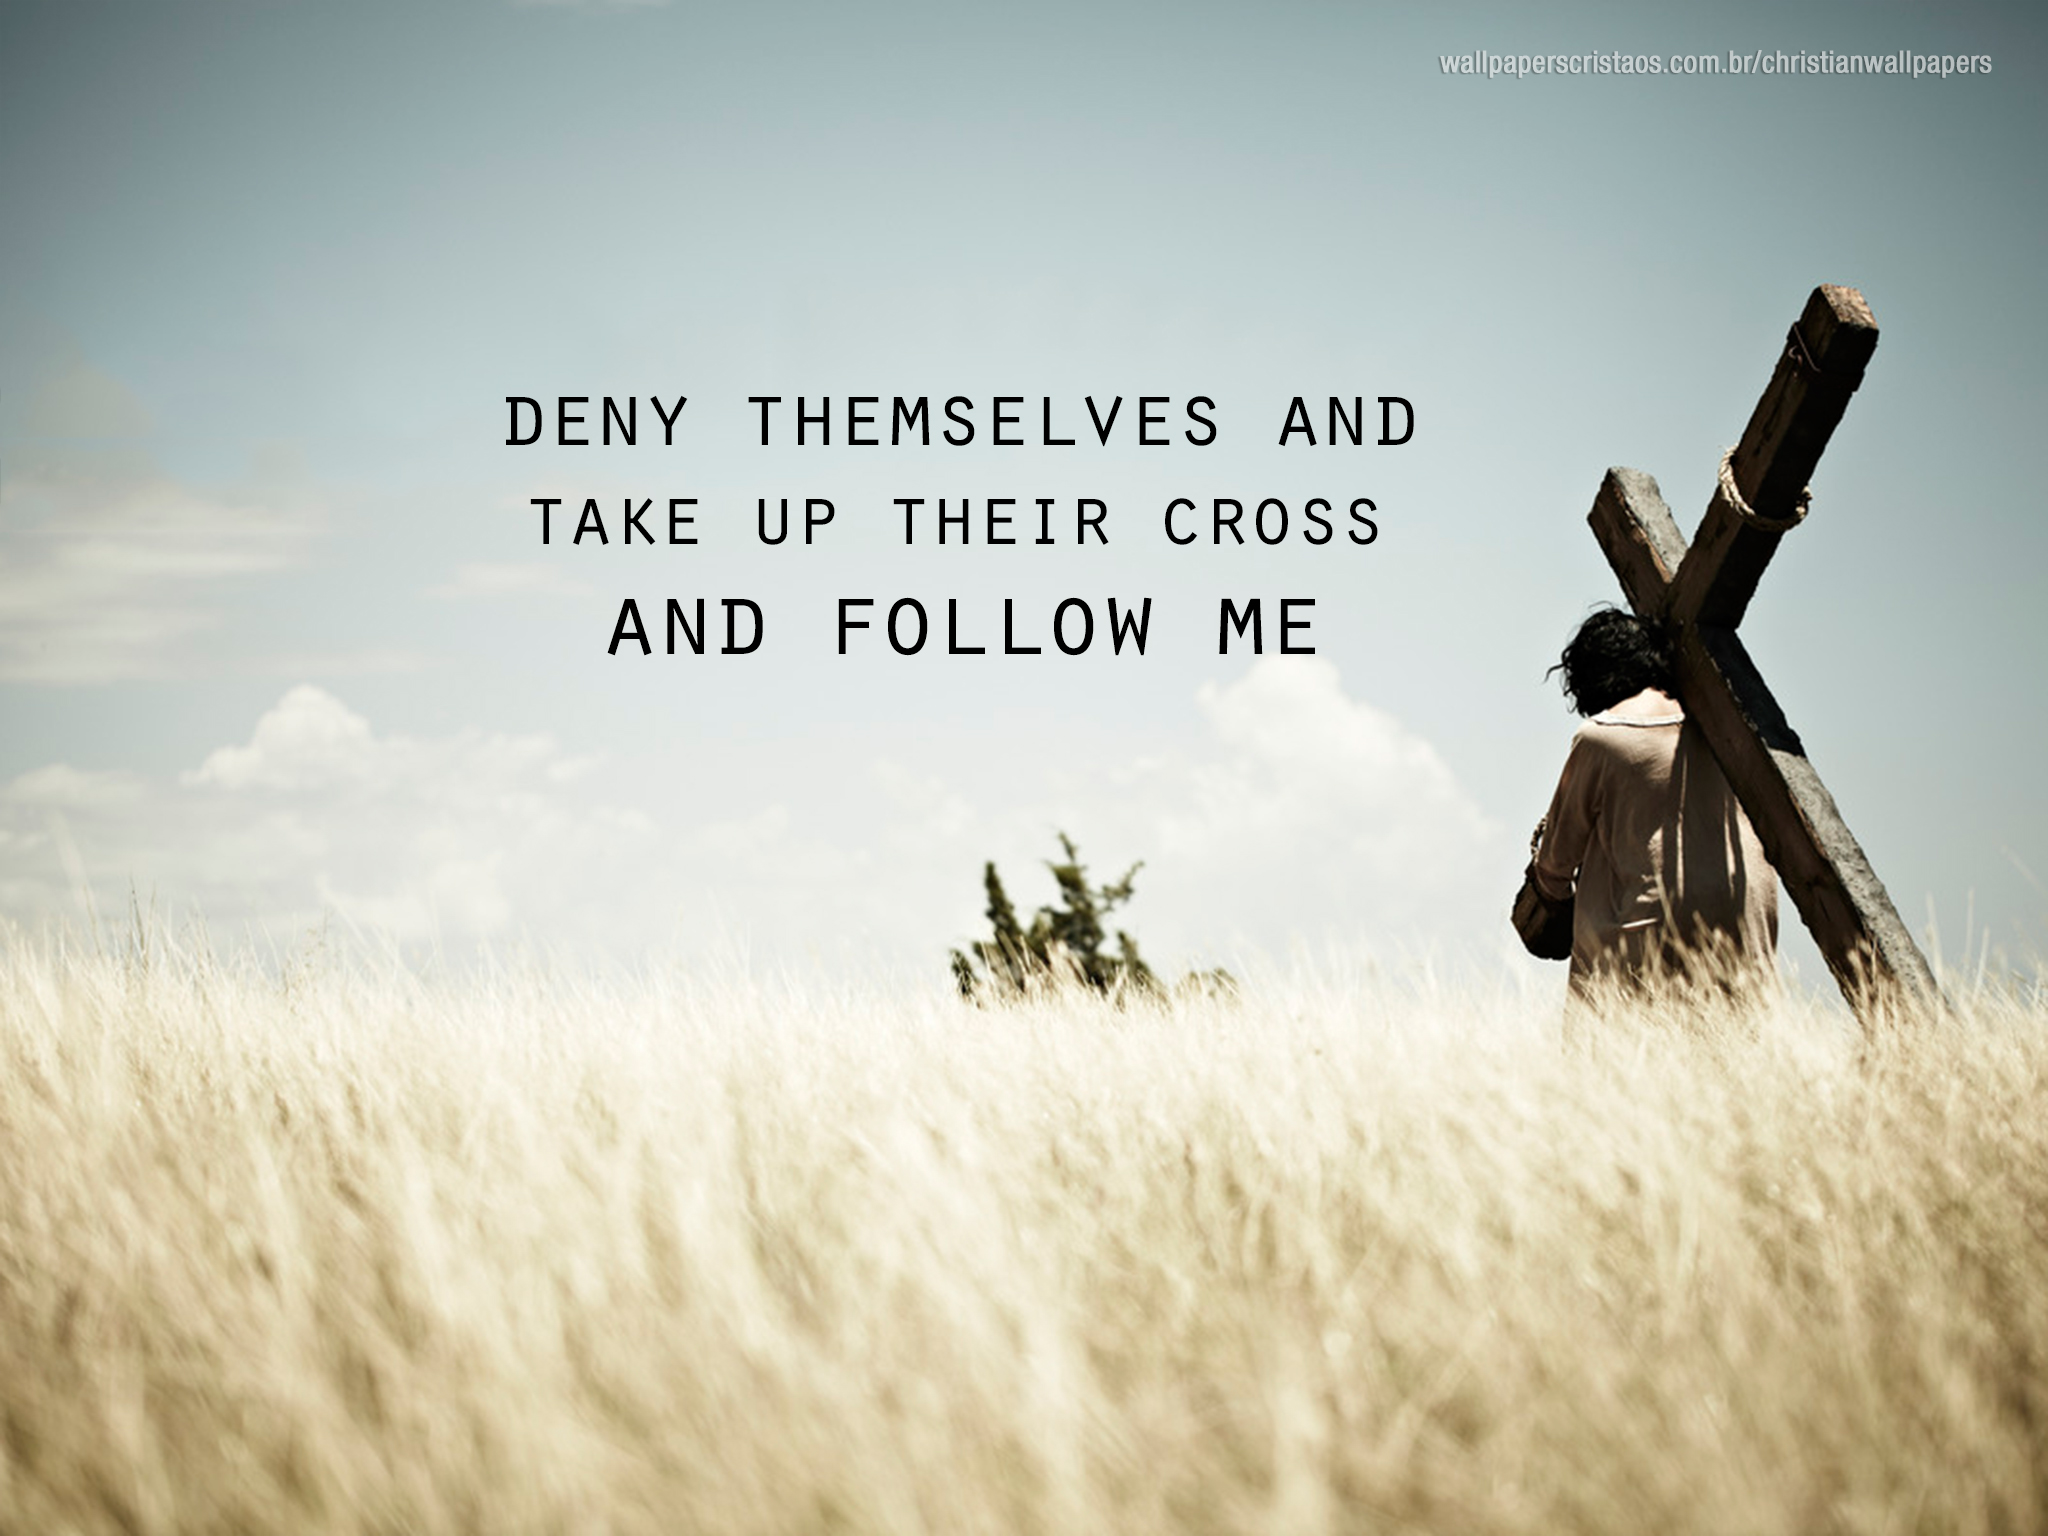 Deny Themselves Take Up Their Cross Follow Me Christian Wallpaper Hd 2048x1536